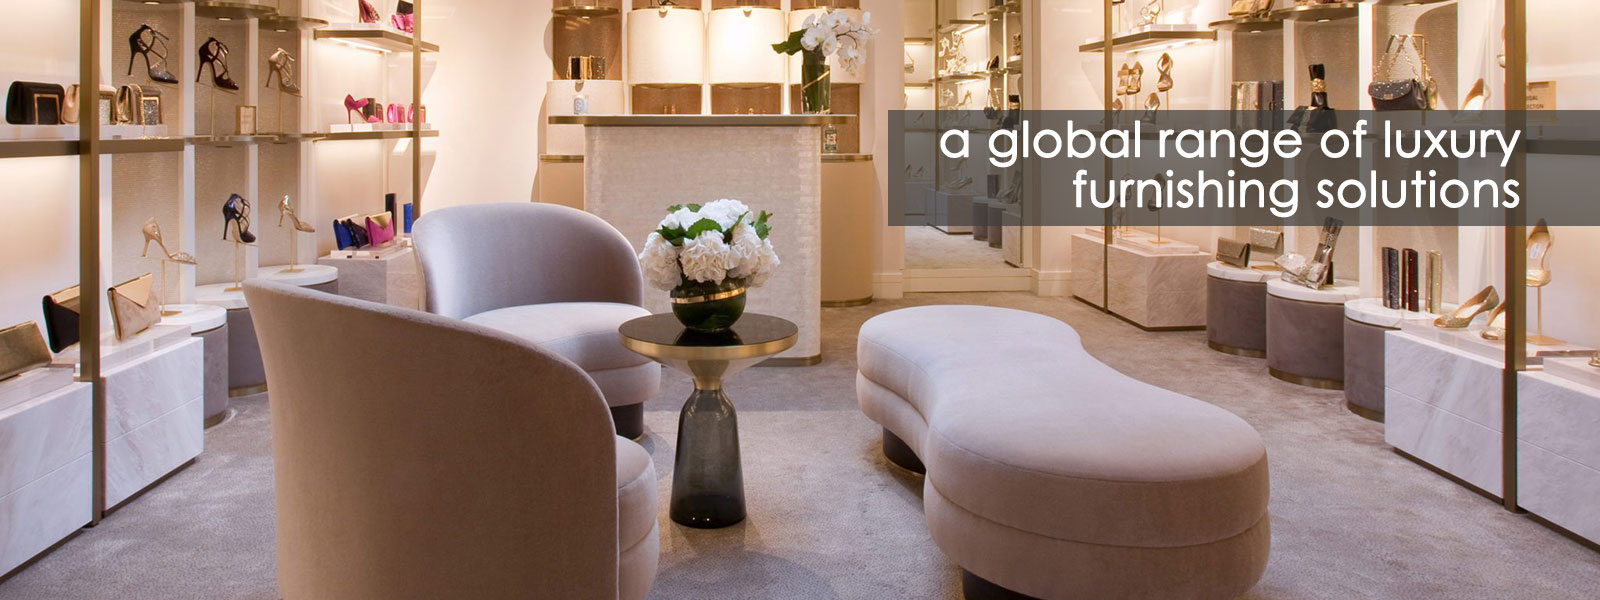 A global range of luxury furnishing solutions